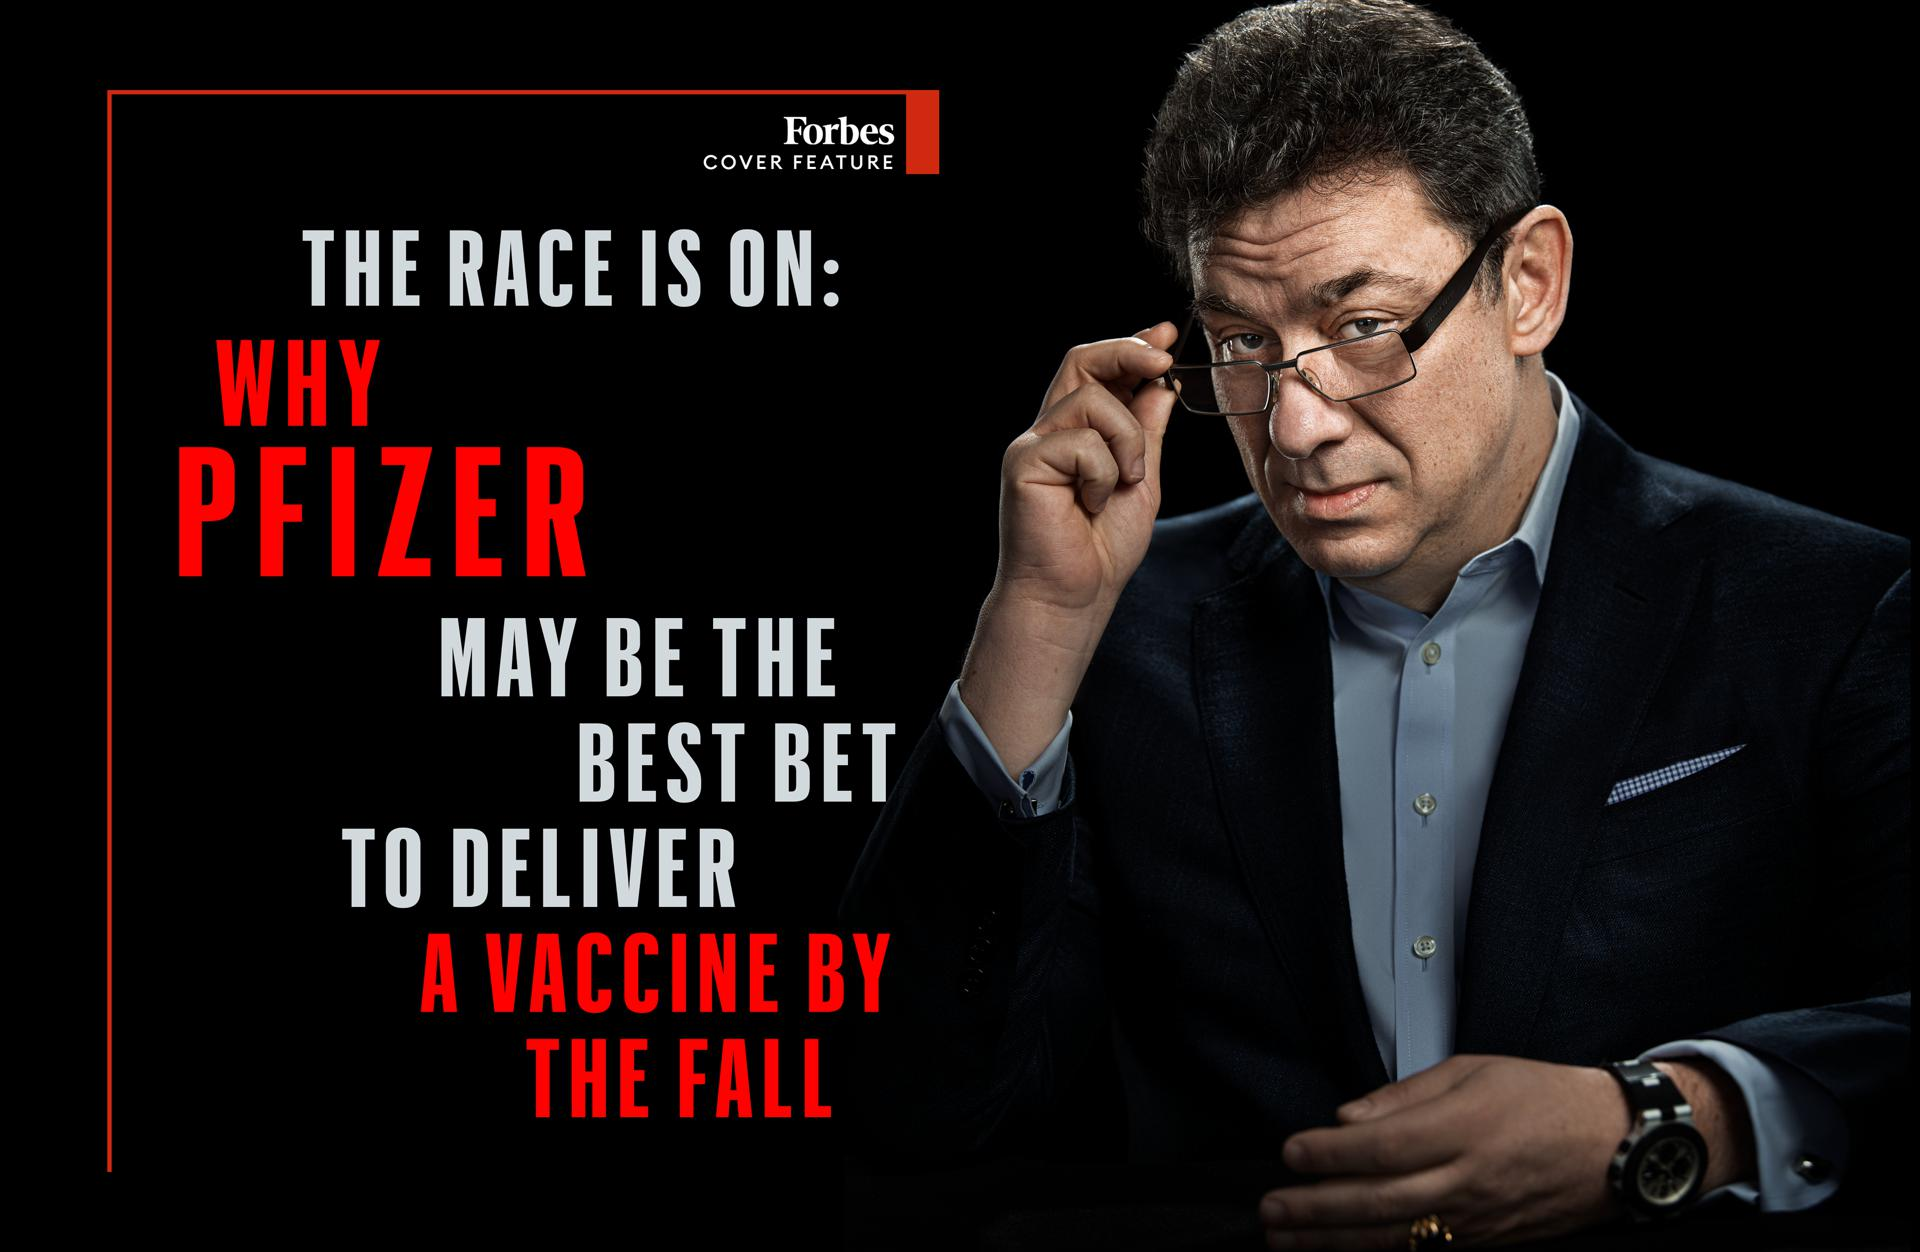 The Race Is On: Why Pfizer May Be The Best Bet To Deliver A Vaccine By The Fall